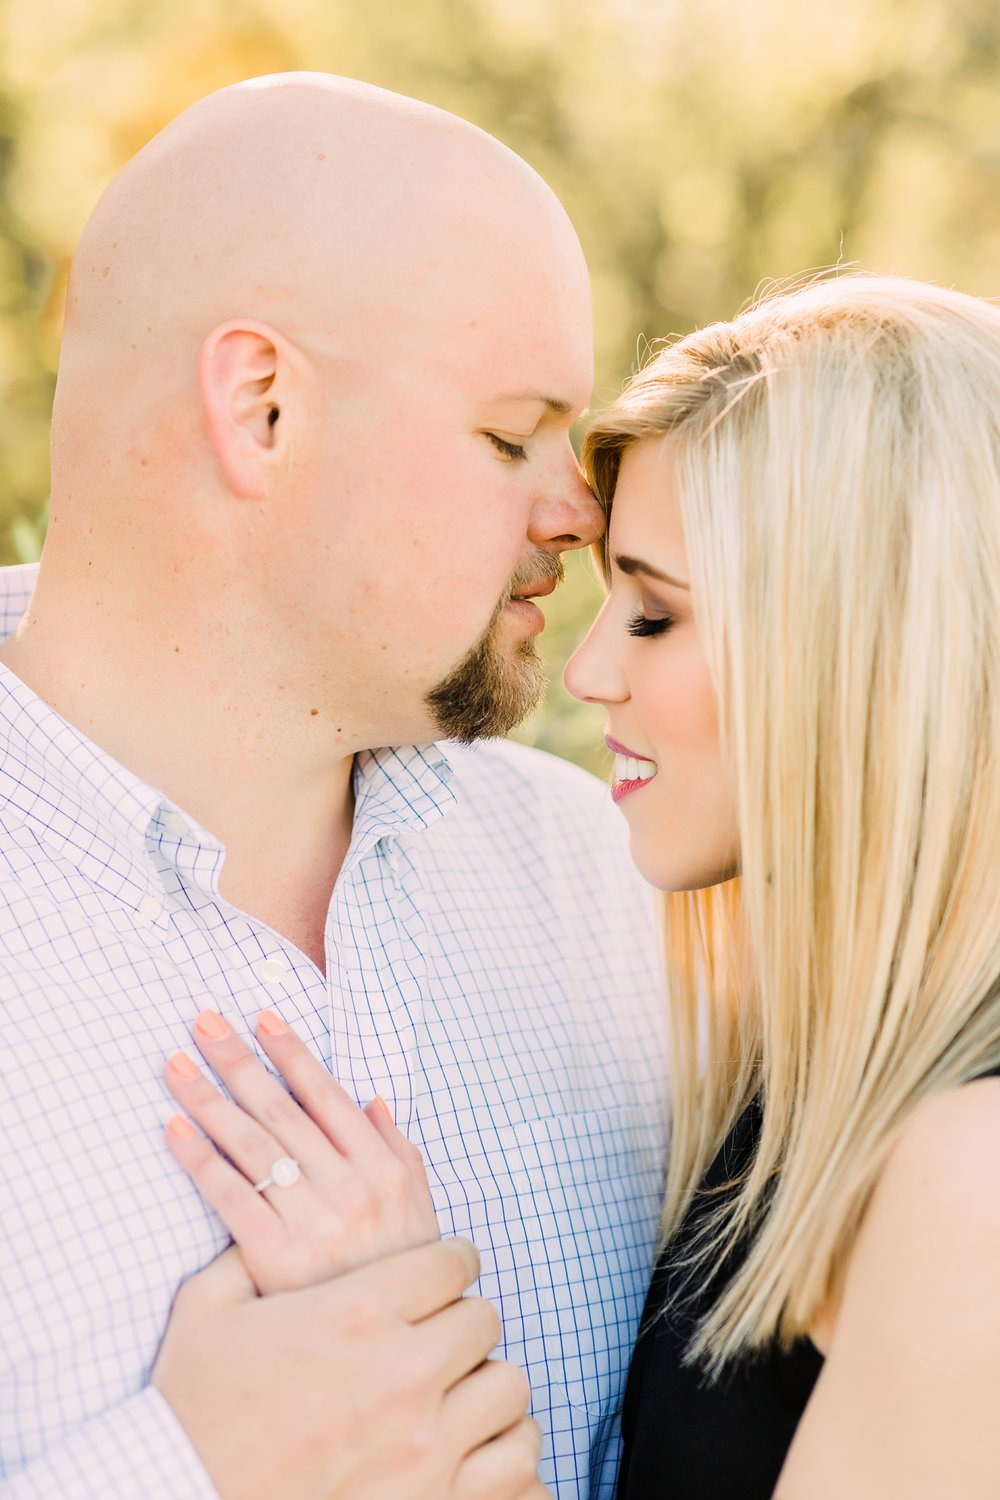 kayla-trent-country-engagement-session-texas-windthorst-graham-wichita-falls-jeep-engaged-00002.jpg